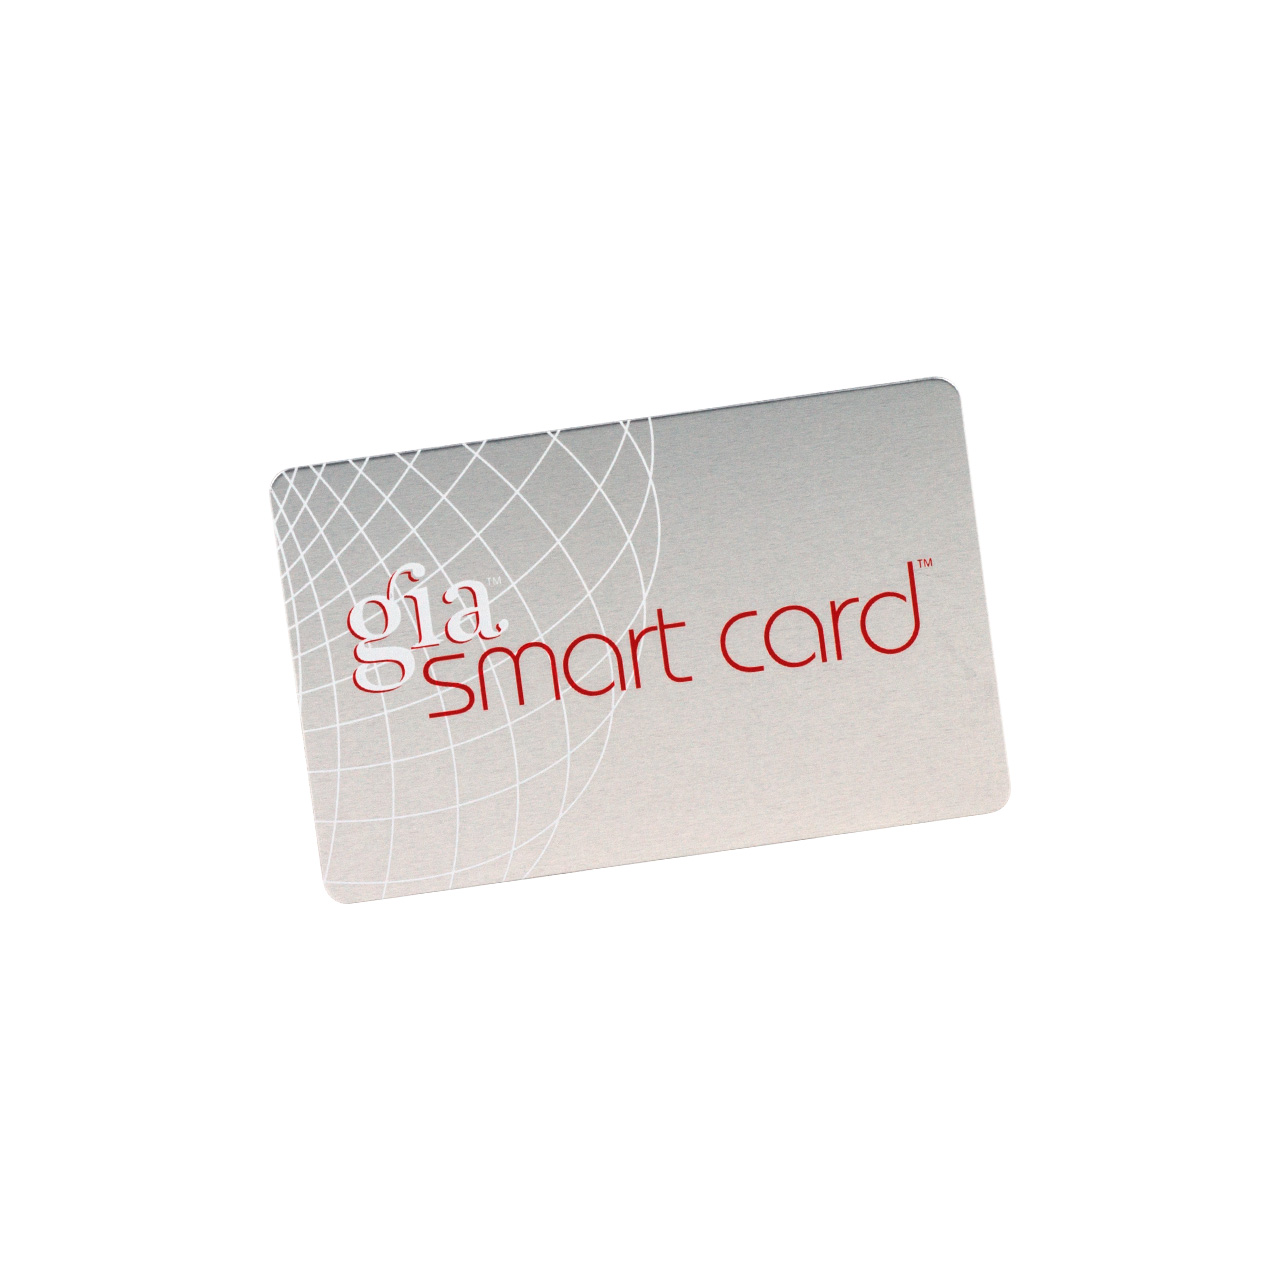 Coin 2.0 Smart card - Review - YouTube